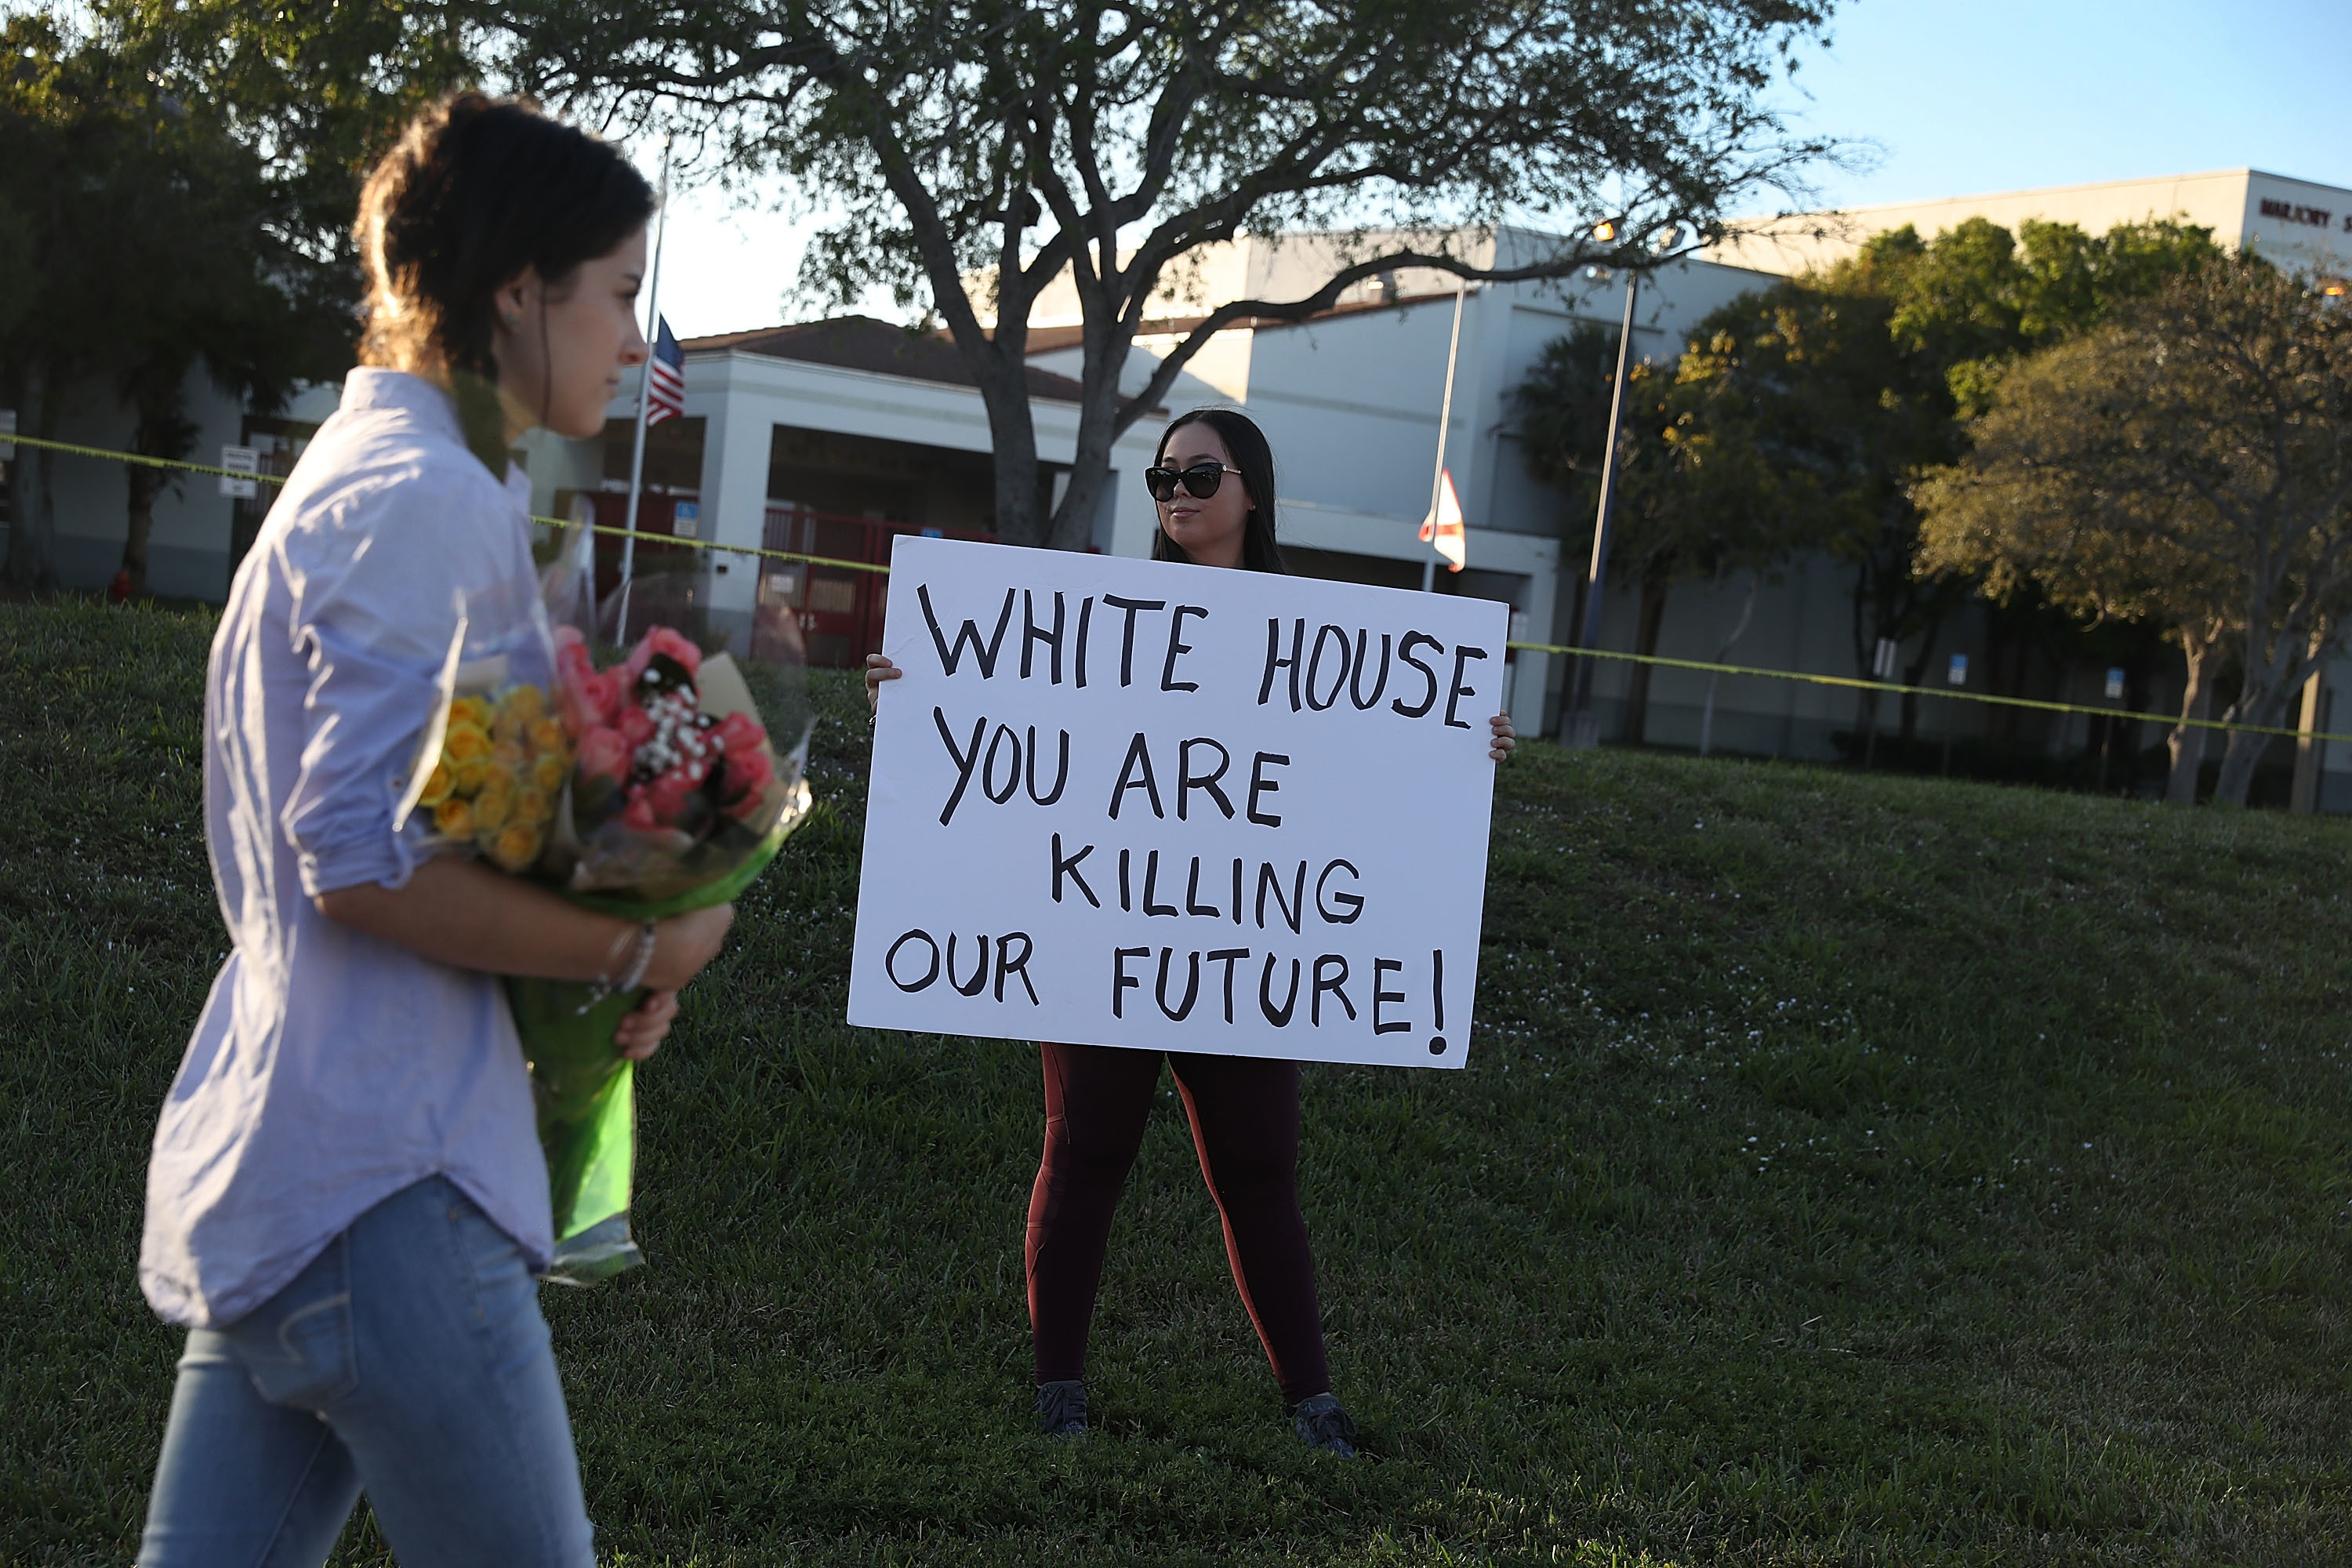 Karissa Saenz, a senior at Marjory Stoneman Douglas High School  holds a sign in Parkland, Florida. Police arrested and charged 19 year old former student Nikolas Cruz for the February 14 shooting that killed 17 people.  Photo by Joe Raedle/Getty Images.